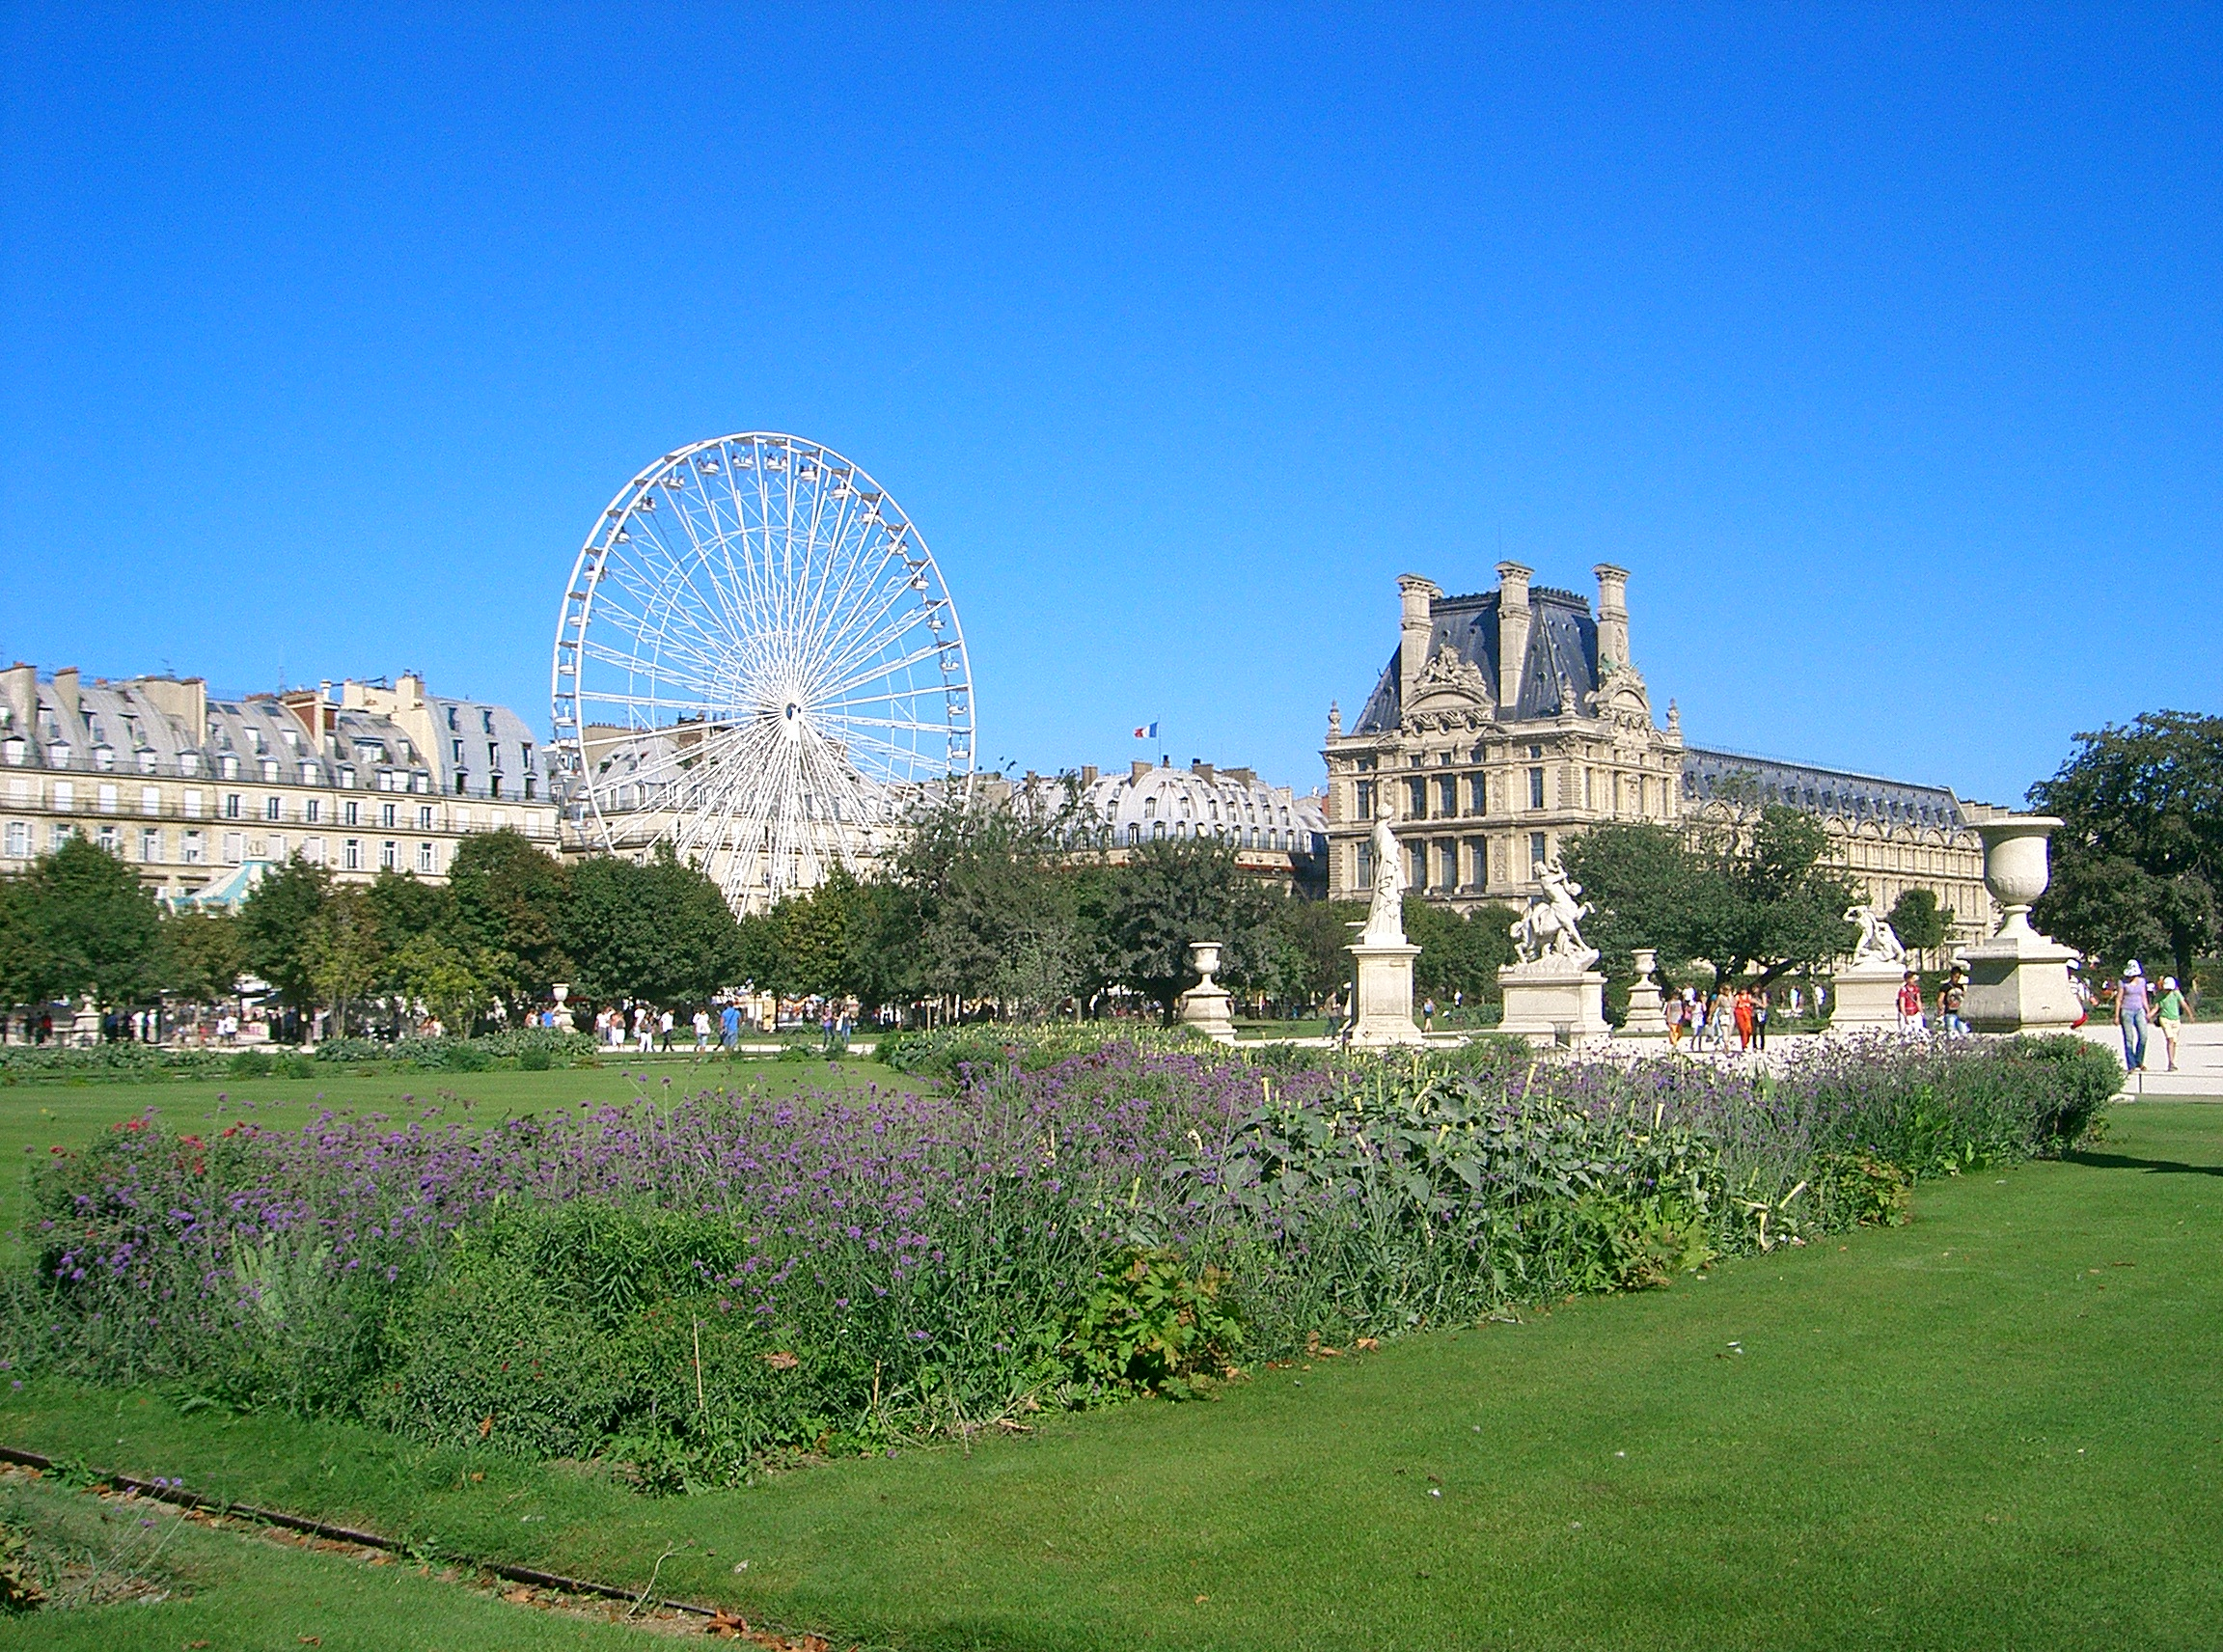 Le jardin des tuileries my favorite places in paris for Les jardins en france